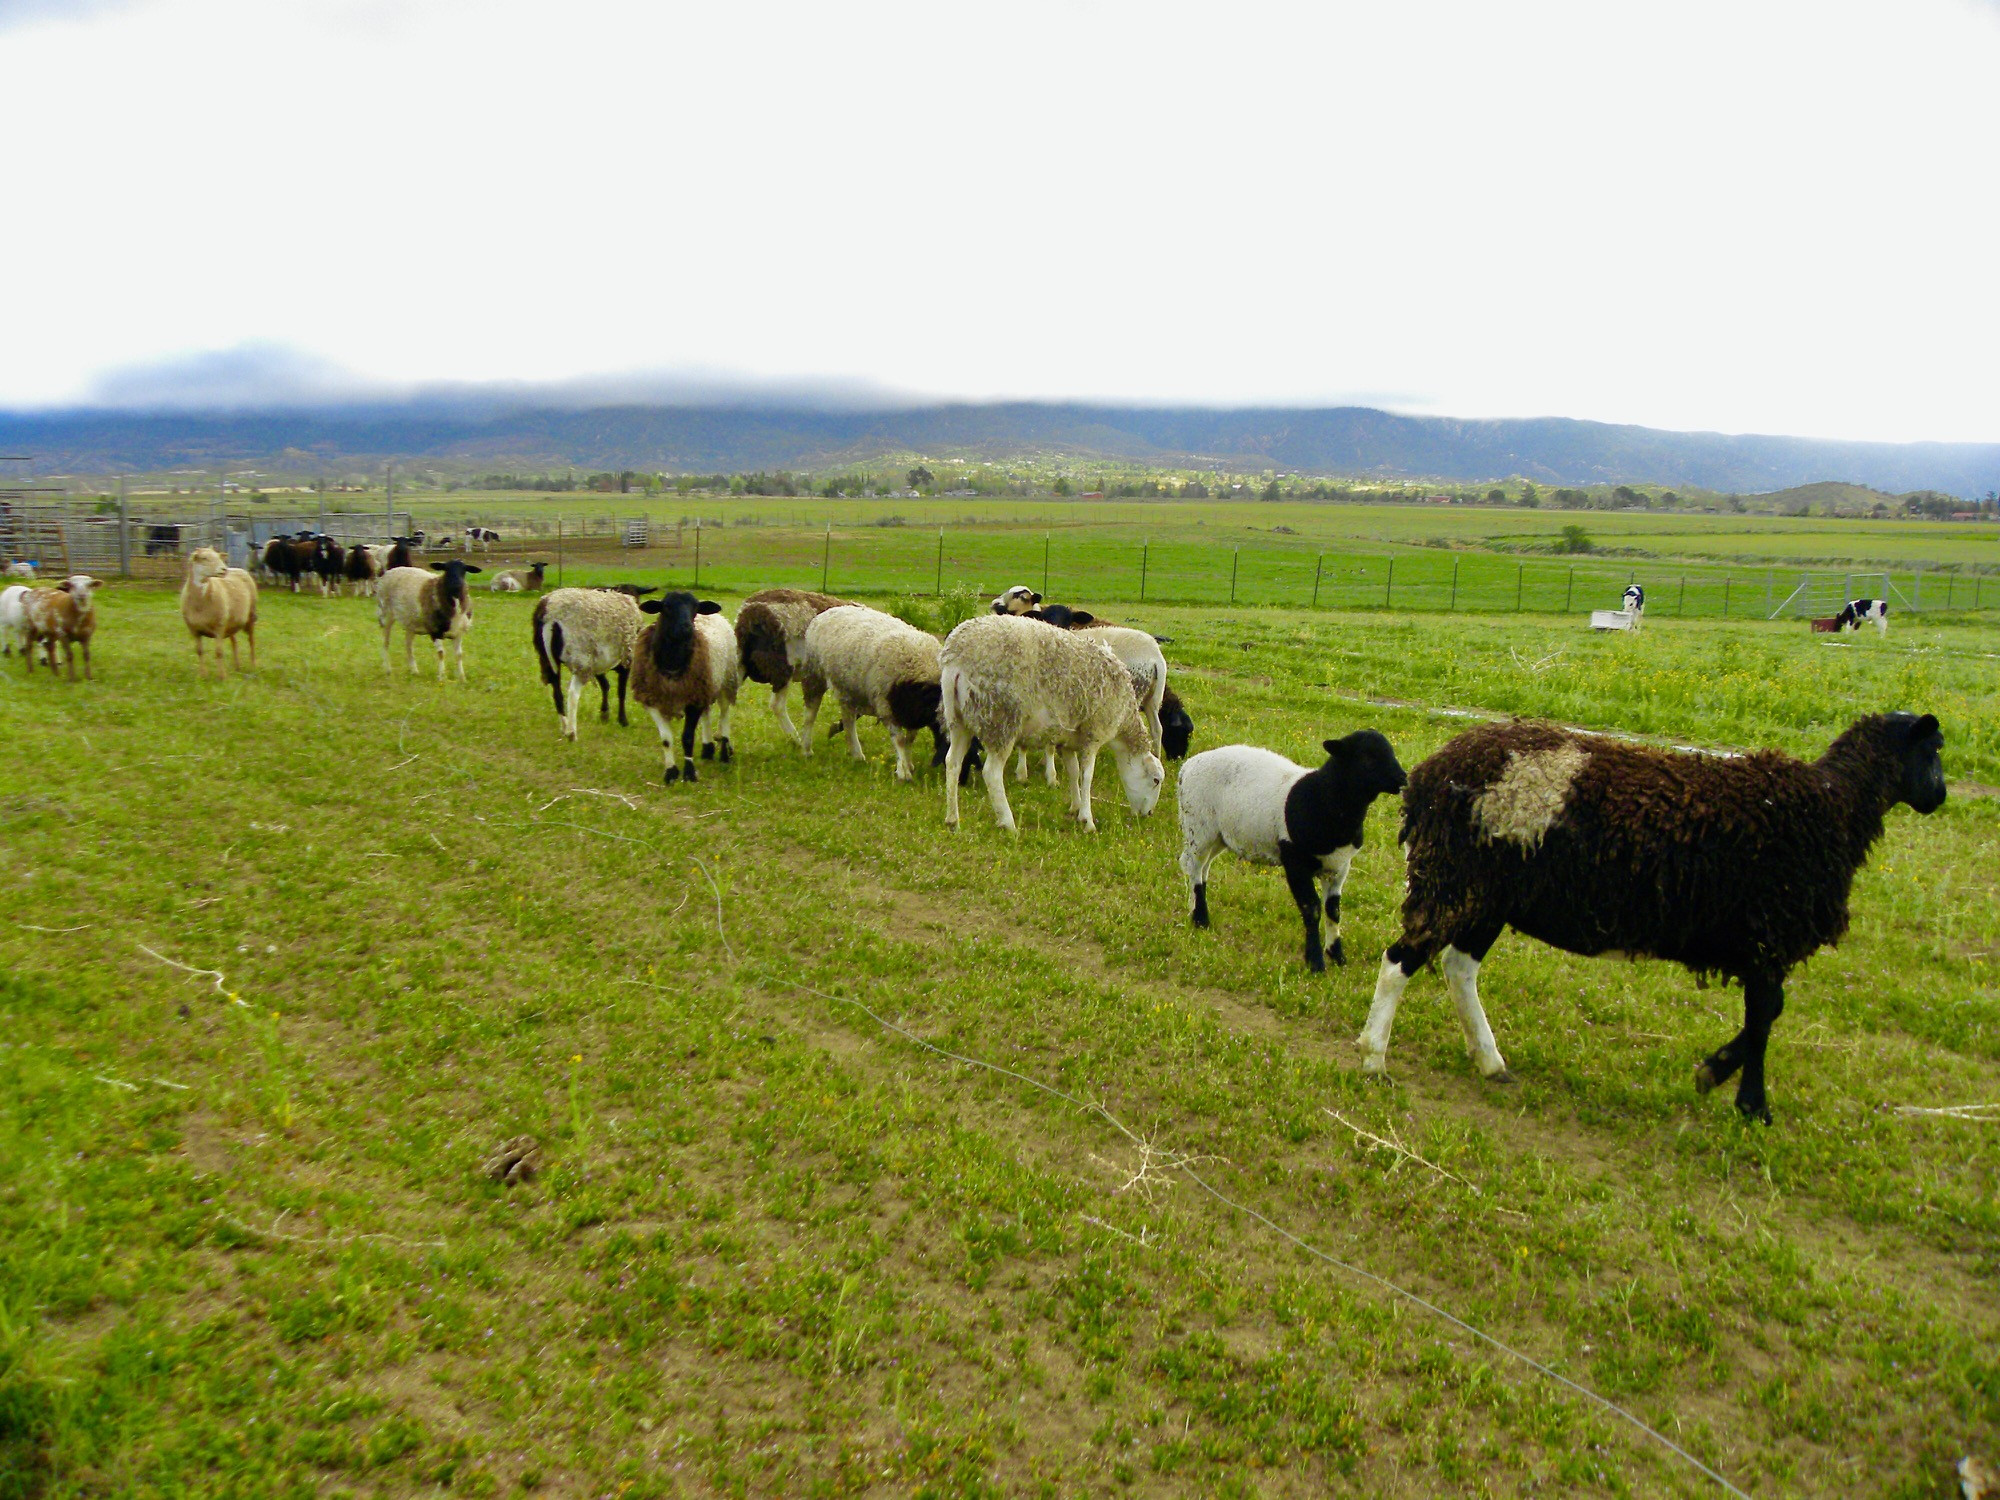 Sage Mountain Beef provides an excellent source of protein, vitamin B12, selenium, zinc, iron, phosphorus and other B vitamins without the concern for pesticide, hormone and antibiotic residues that may be found in other meats.